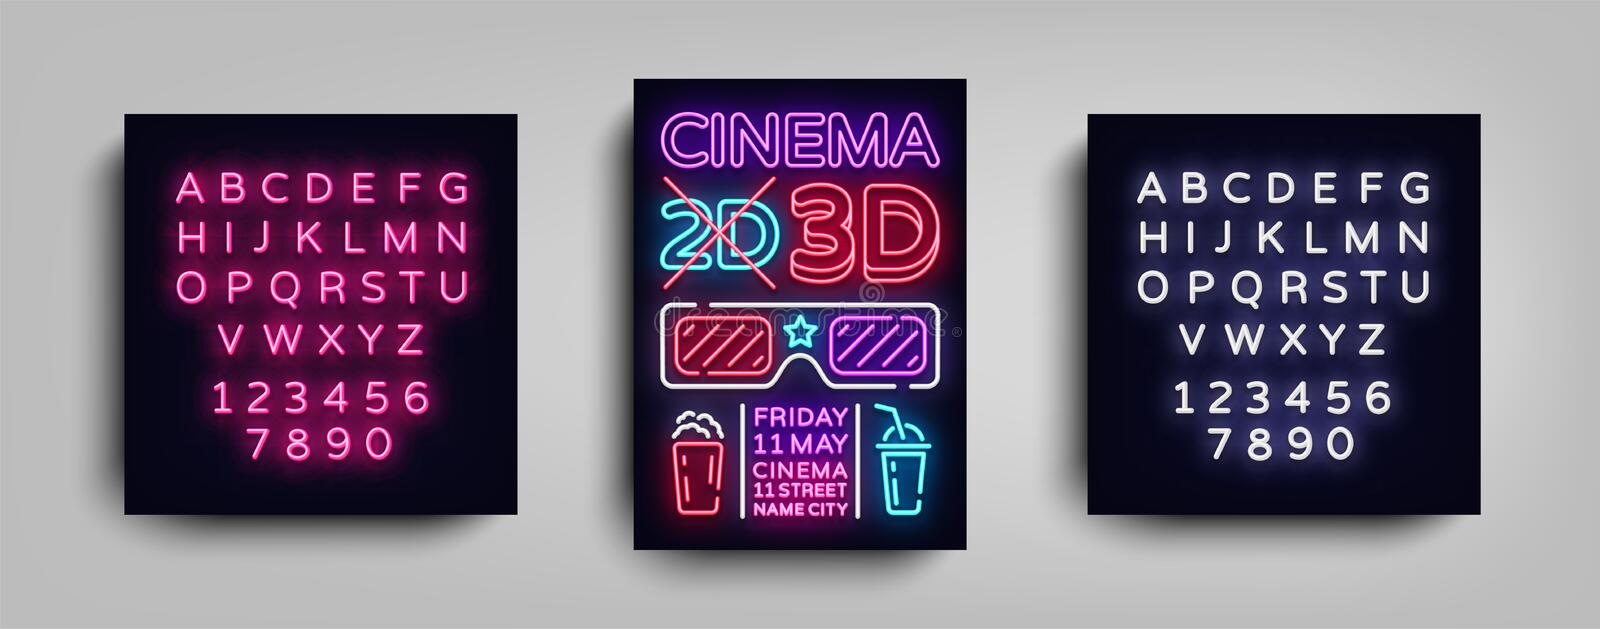 Cinema 3d poster design template neon style. Neon Sign, Light Banner, Bright Flyer, Design Postcard, Promotional vector illustration